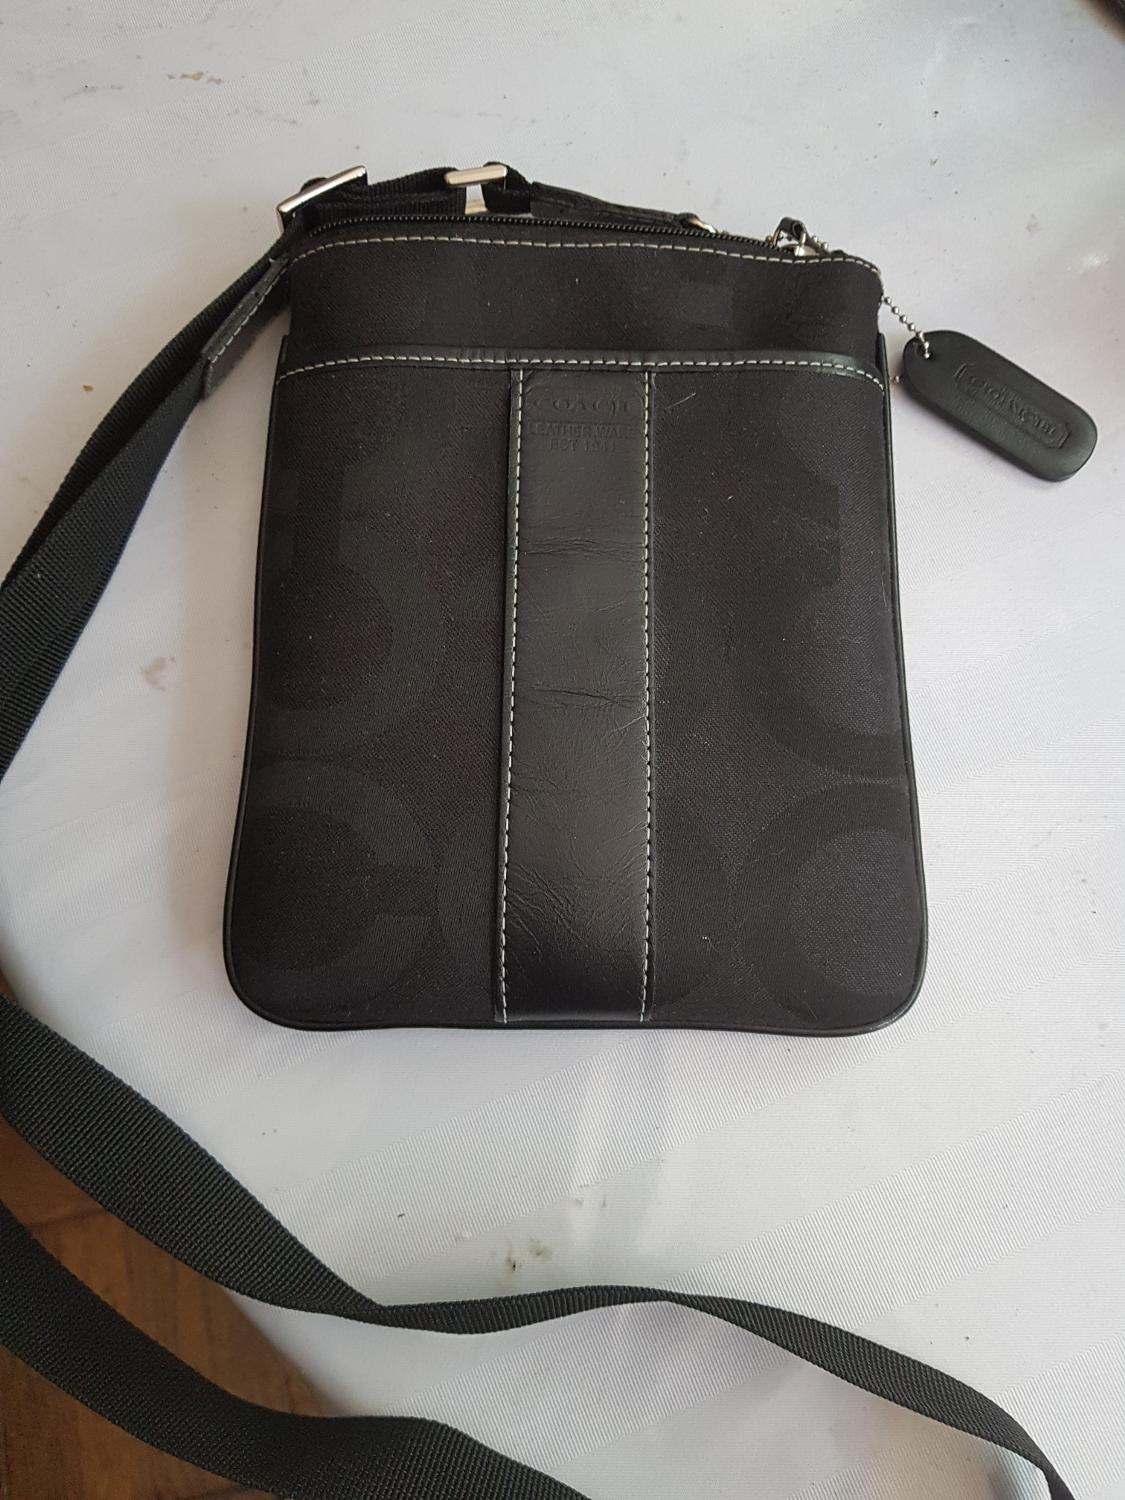 Best Authentic Coach Crossbody Purse for sale in The Beaches ... 32bc64713db1